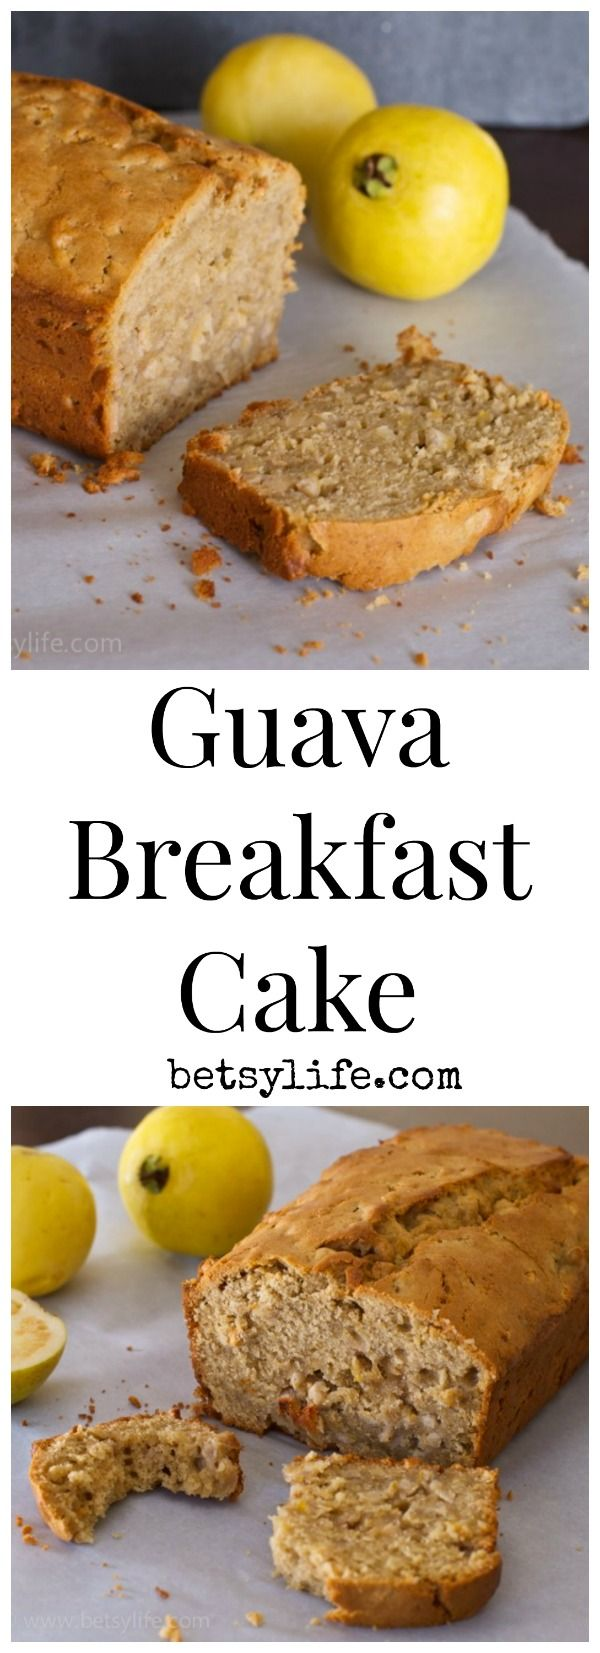 Guava Breakfast Cake                                                                                                                                                                                 More